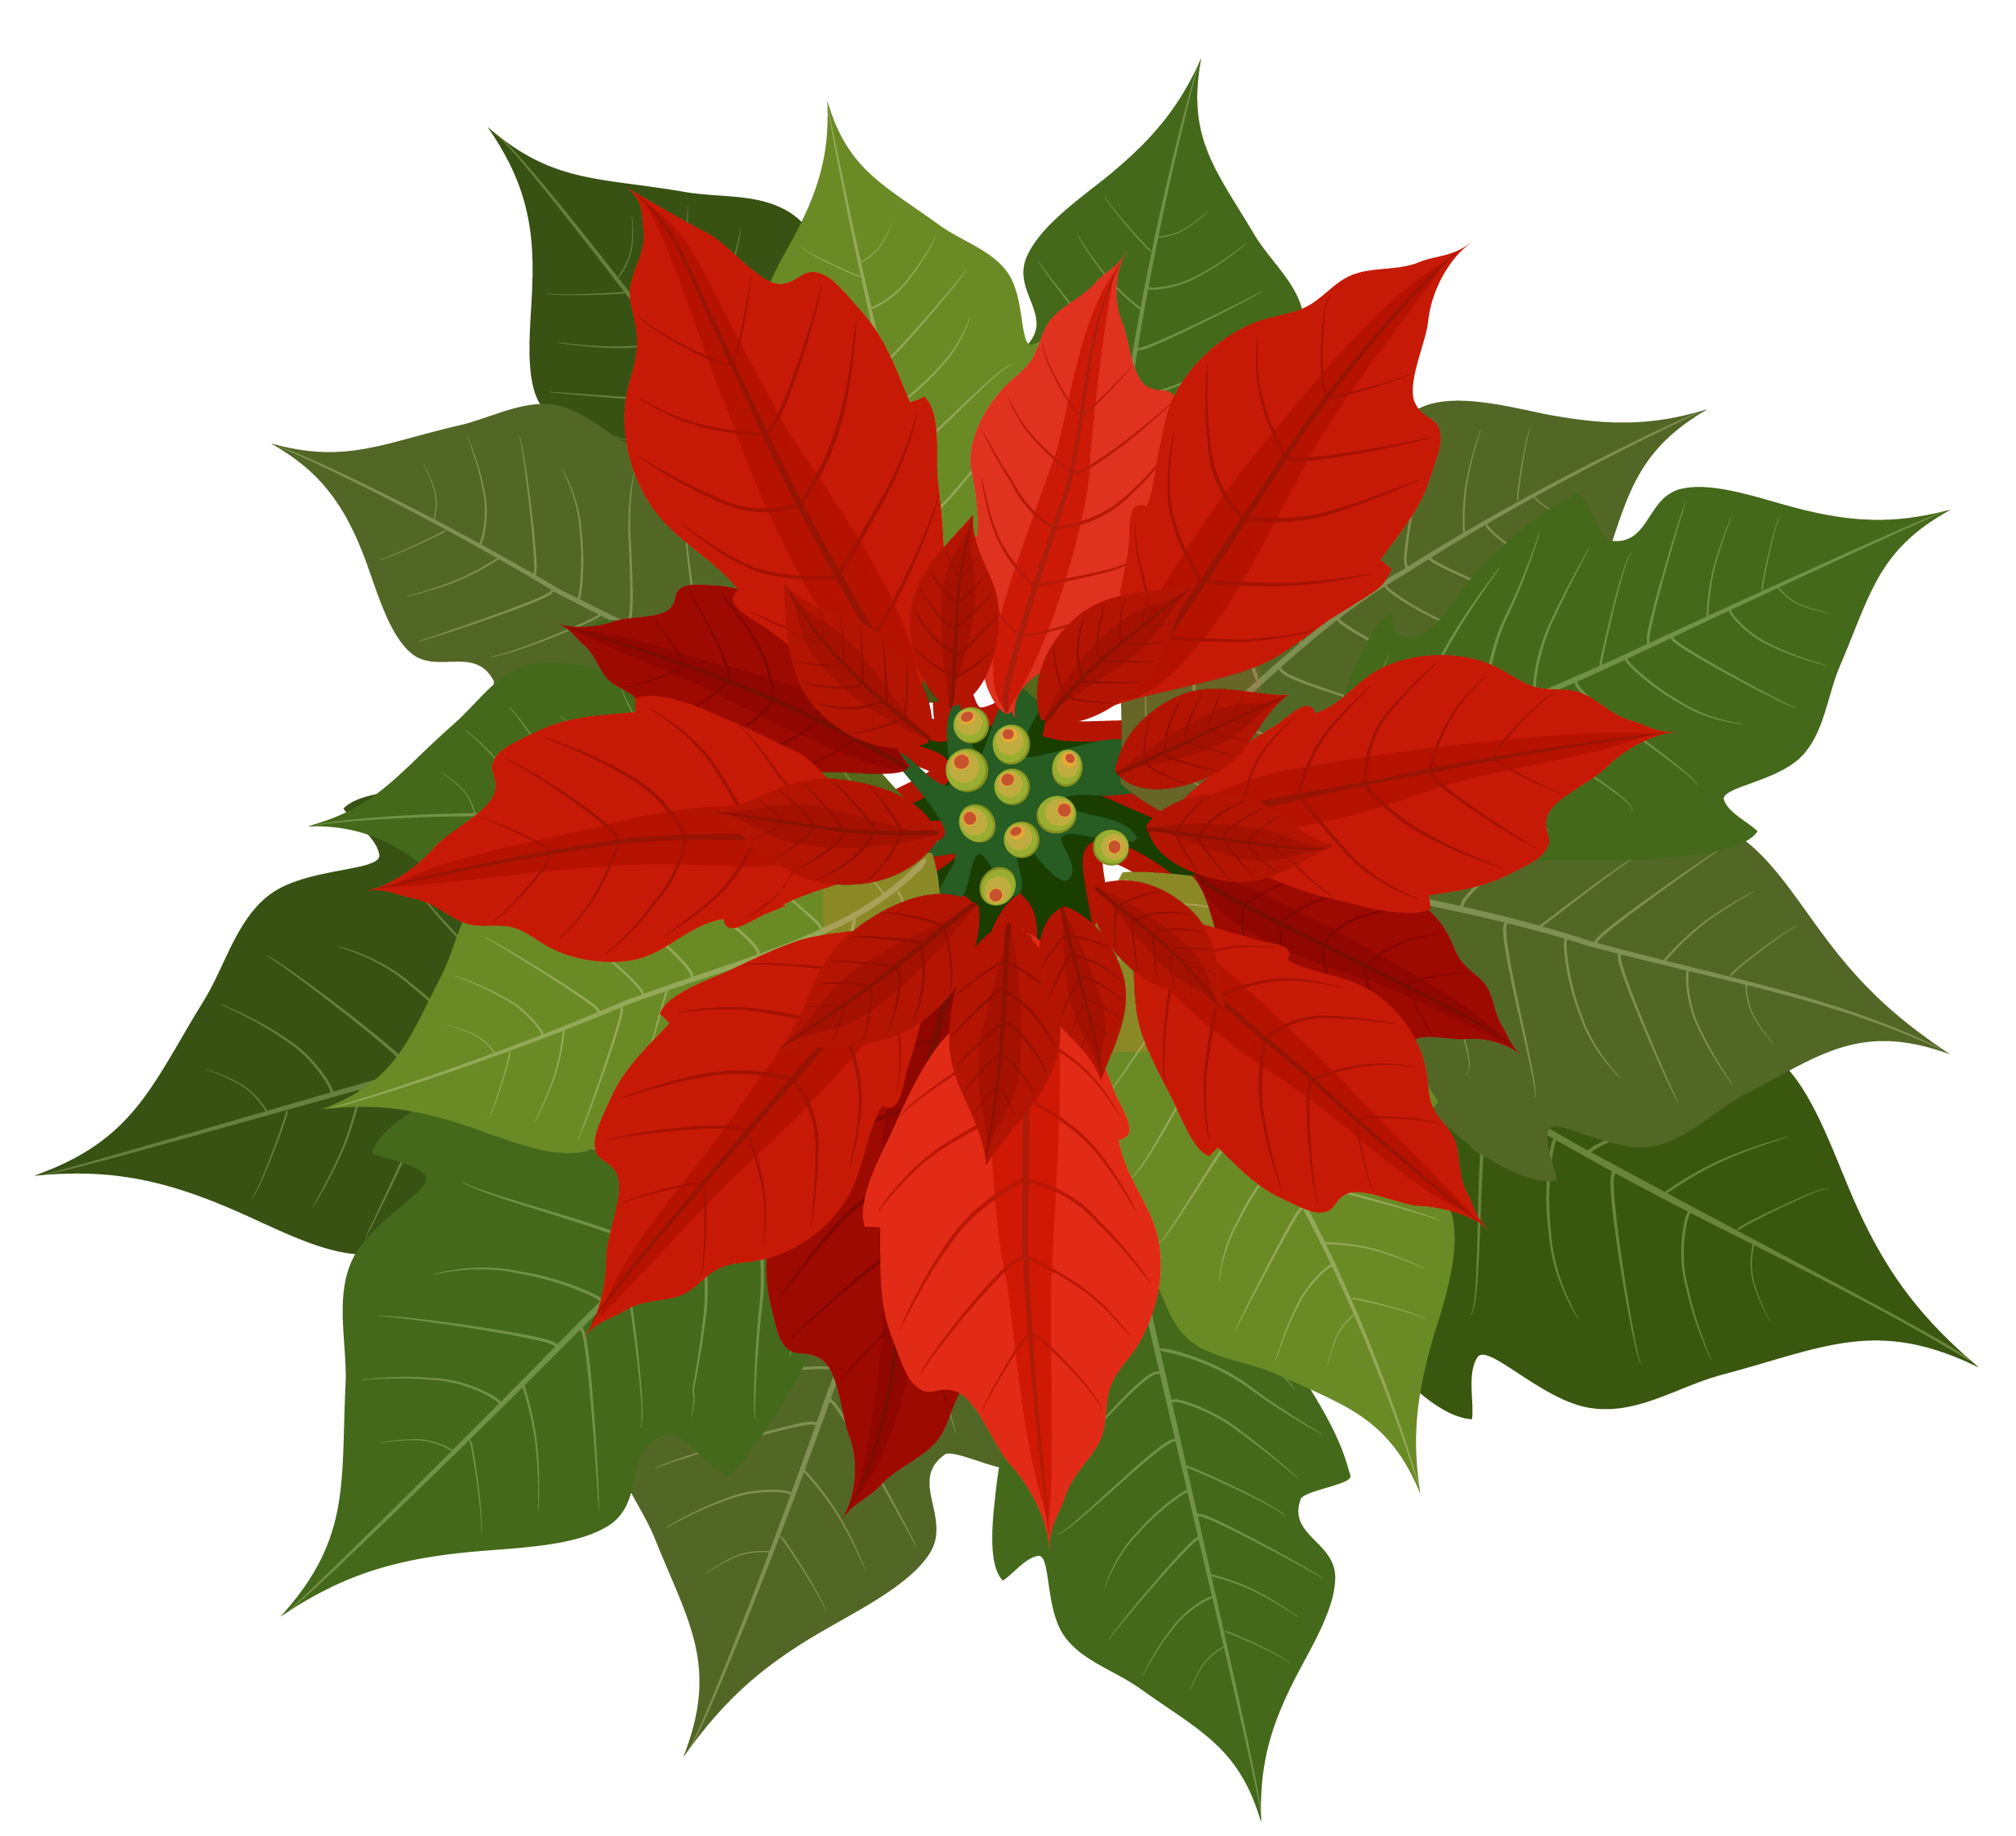 Free poinsettia clipart images. Poinsettias cliparts download clip